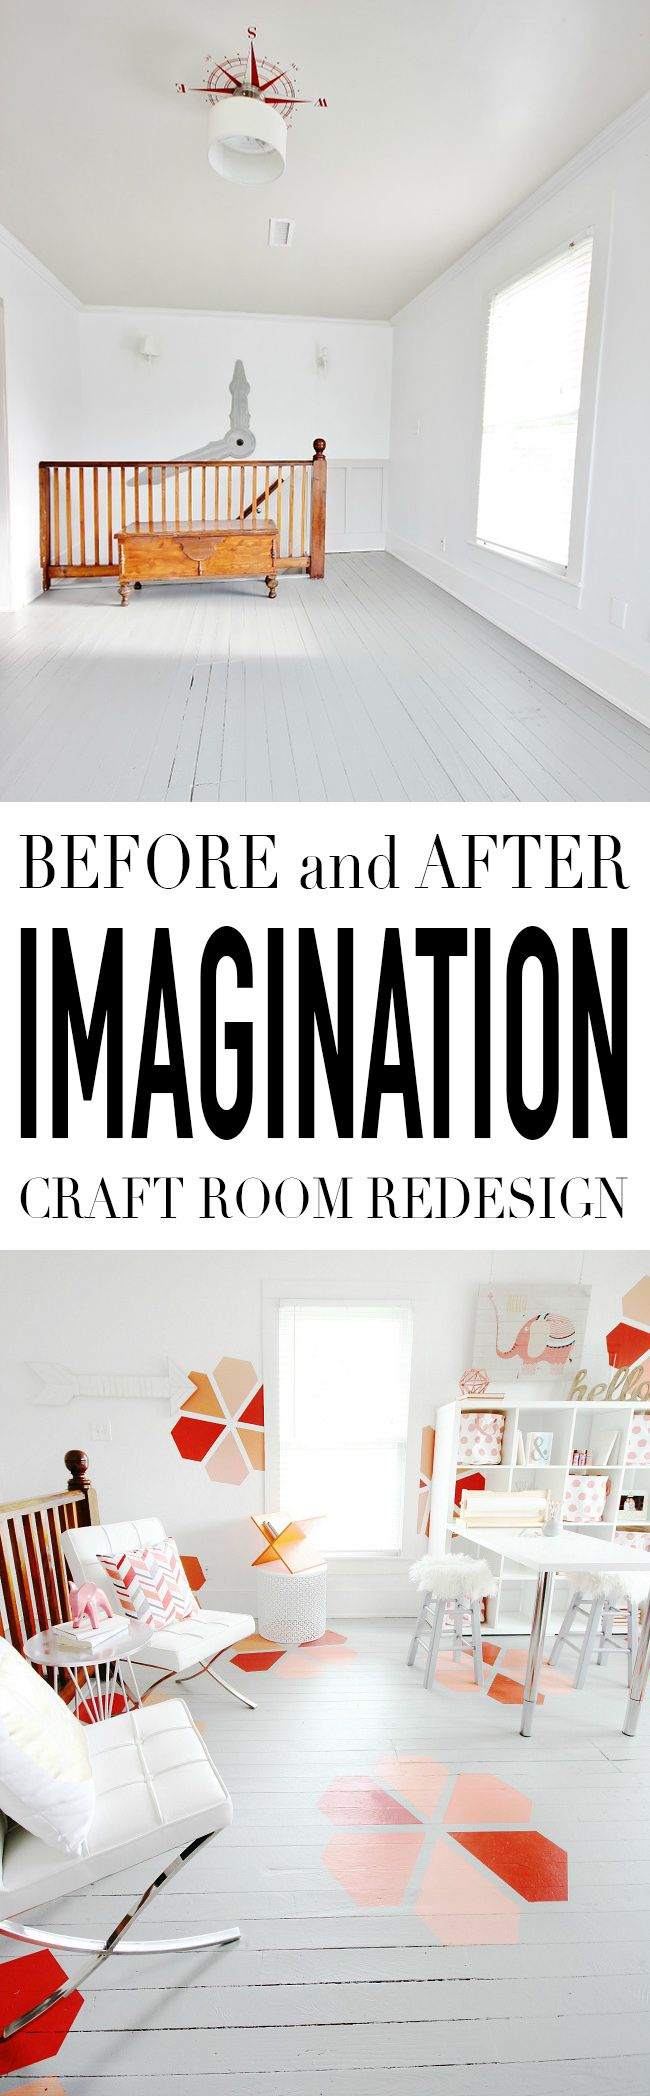 Before and After Imagination Craft Room Redesign